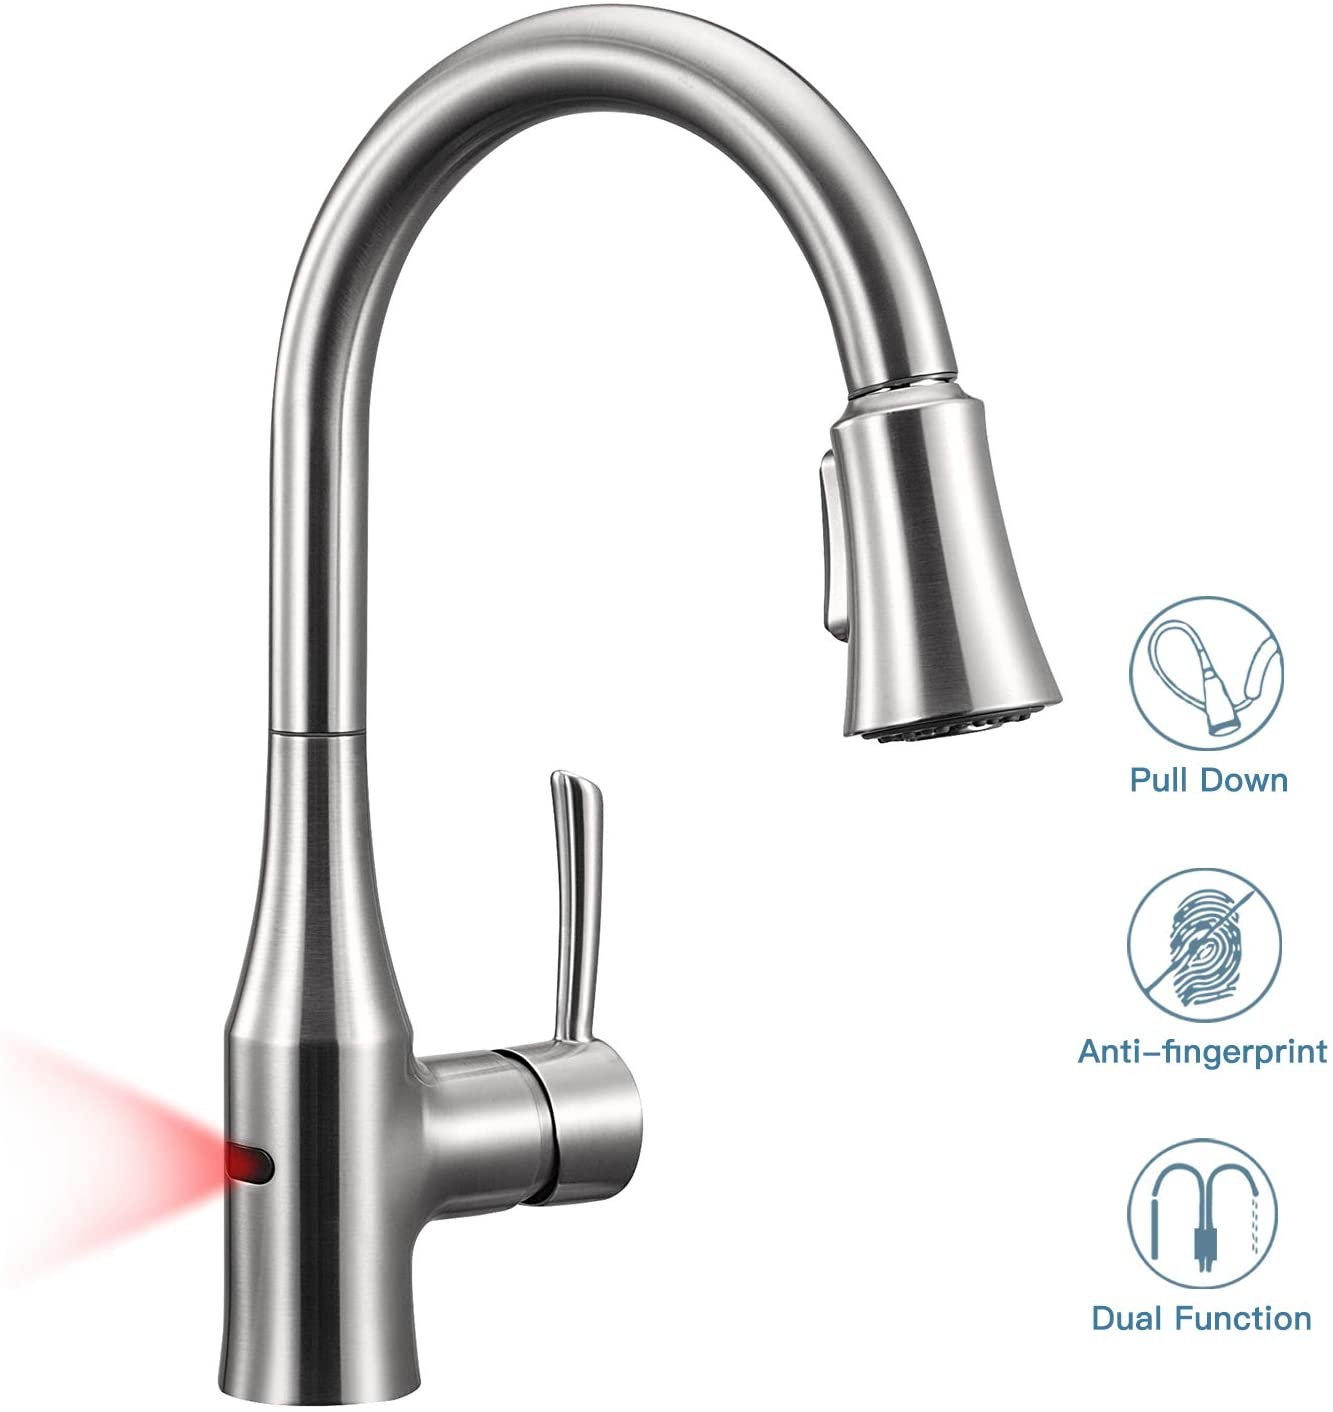 ANZA Touchless Sensor Kitchen Sink Dual-Function Sprayer, Modern Automatic High Arc Single Handle Faucet with Pull Out Spray Head, Spot Stainless Steel Finish, Lead Free, Medium, Resist